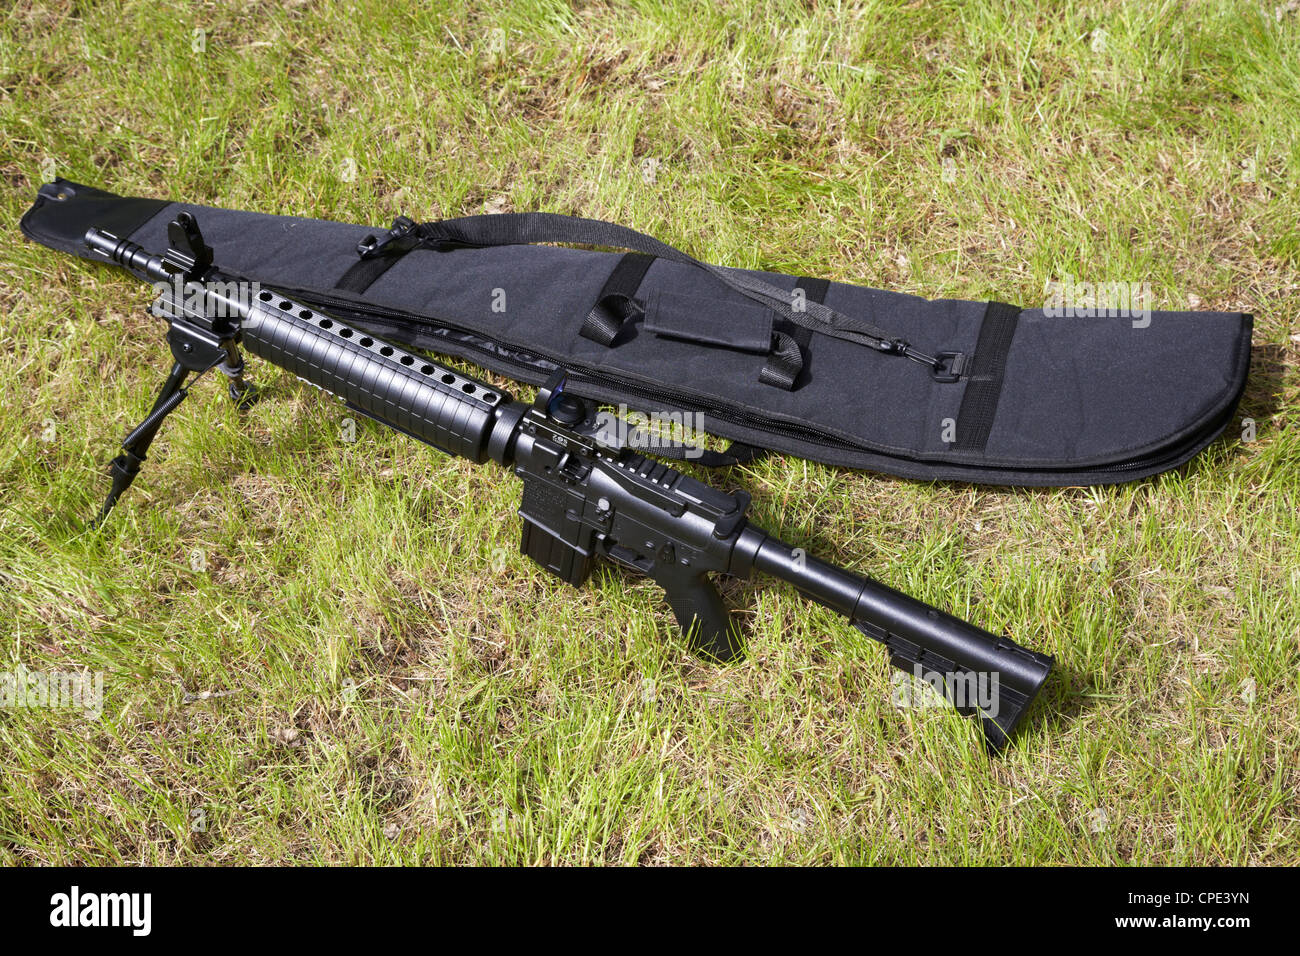 airsoft m417 rifle at a skirmish in the uk - Stock Image